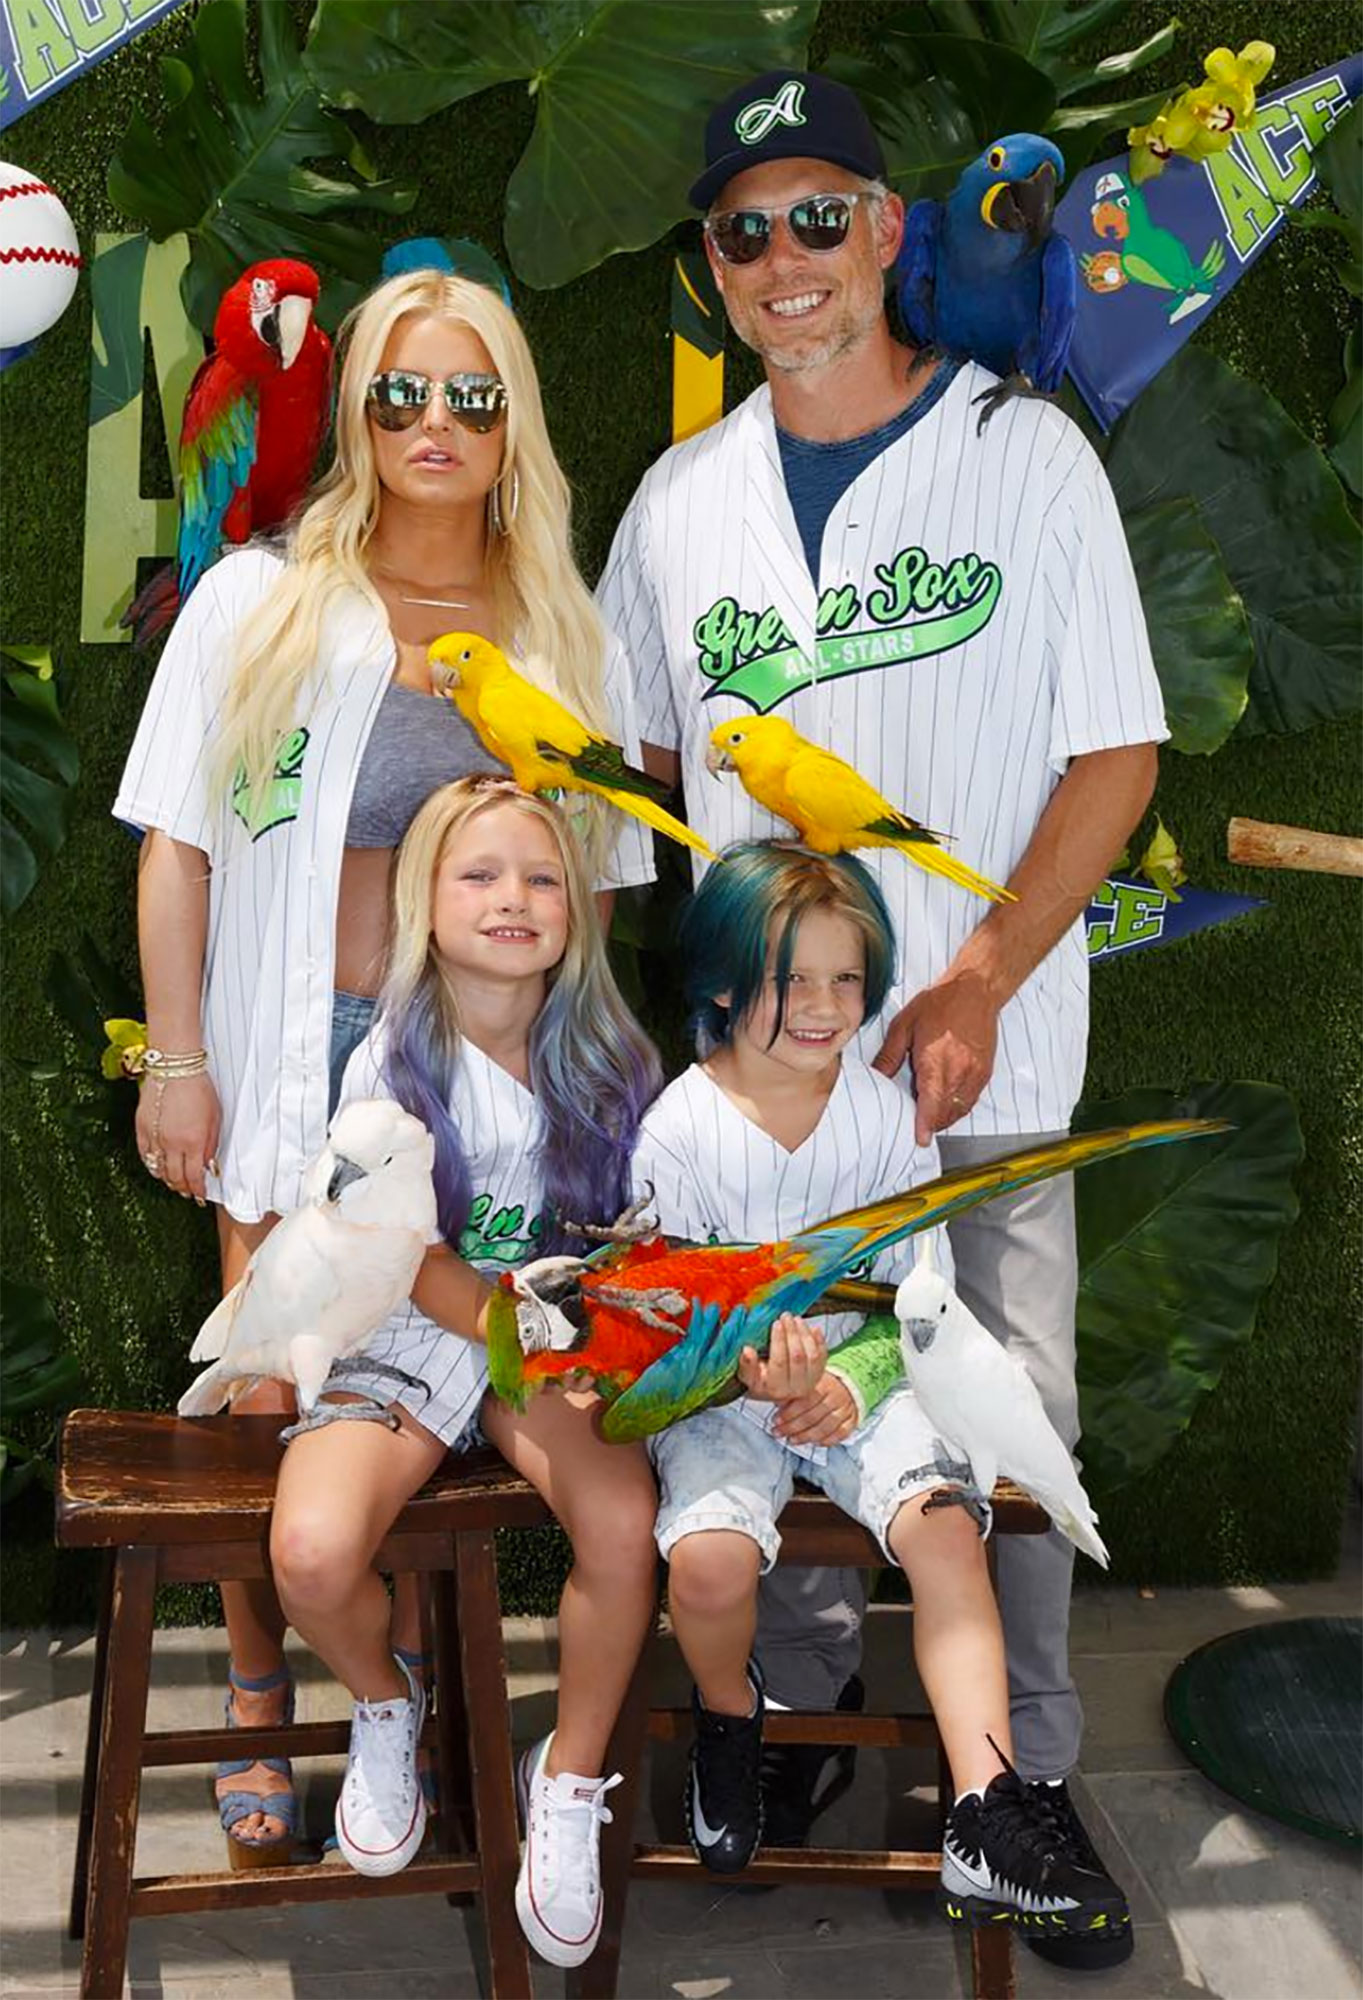 ACE KNUTE'S 'BASEBALL AND PARROT' BASH